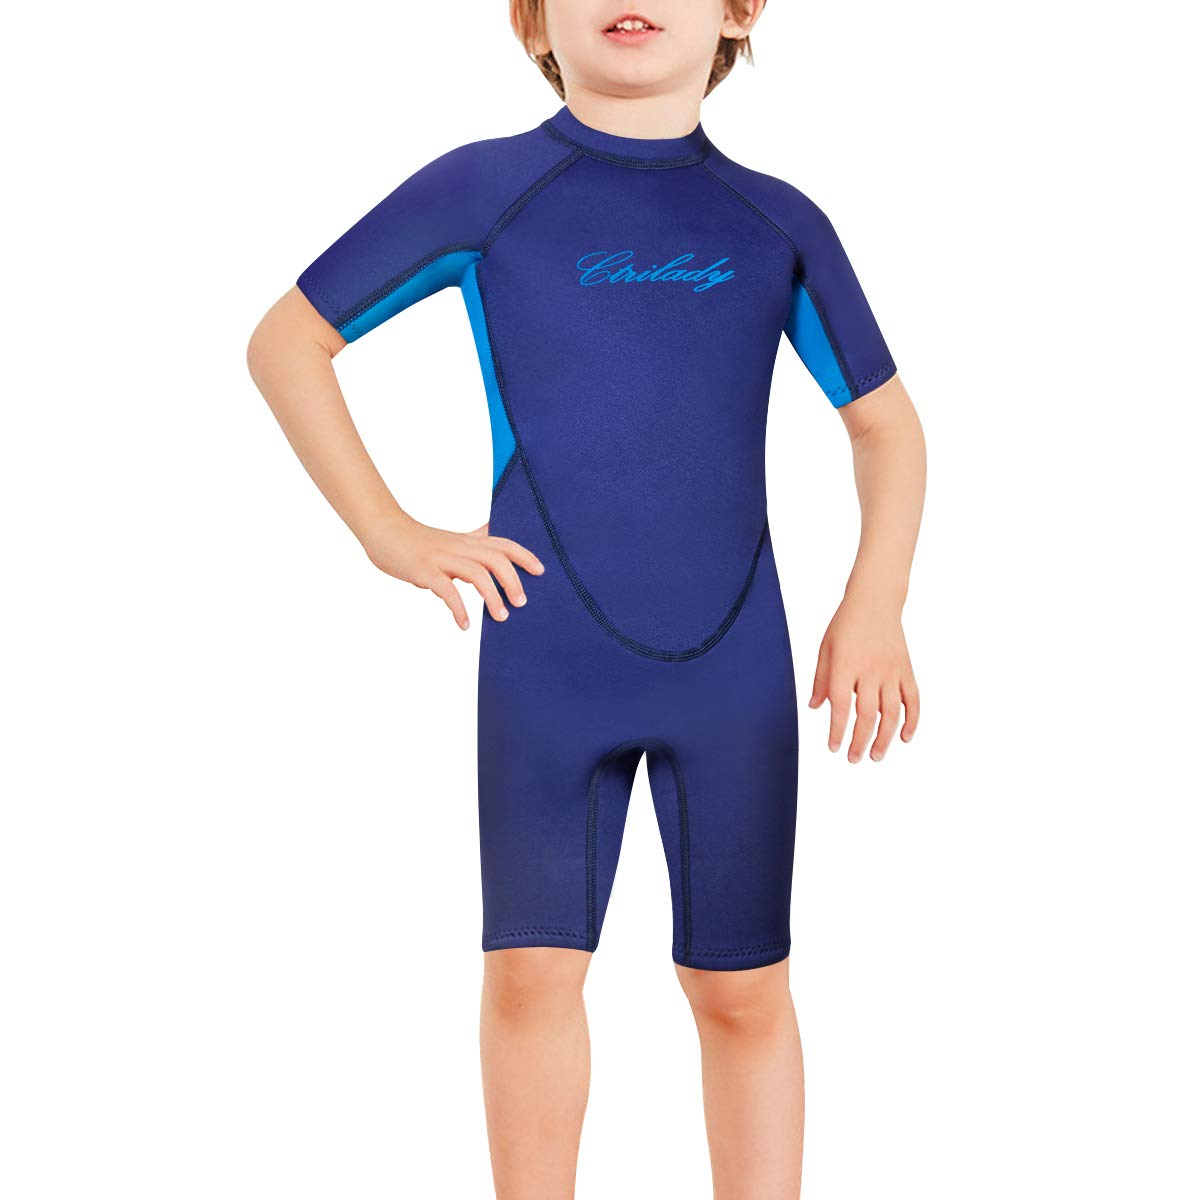 CtriLady Kids Youth Neoprene Wetsuit Keep Warm Swimsuit for Swimming Surfing Snorkeling Diving Water Sports(Blue,XL) by CtriLady